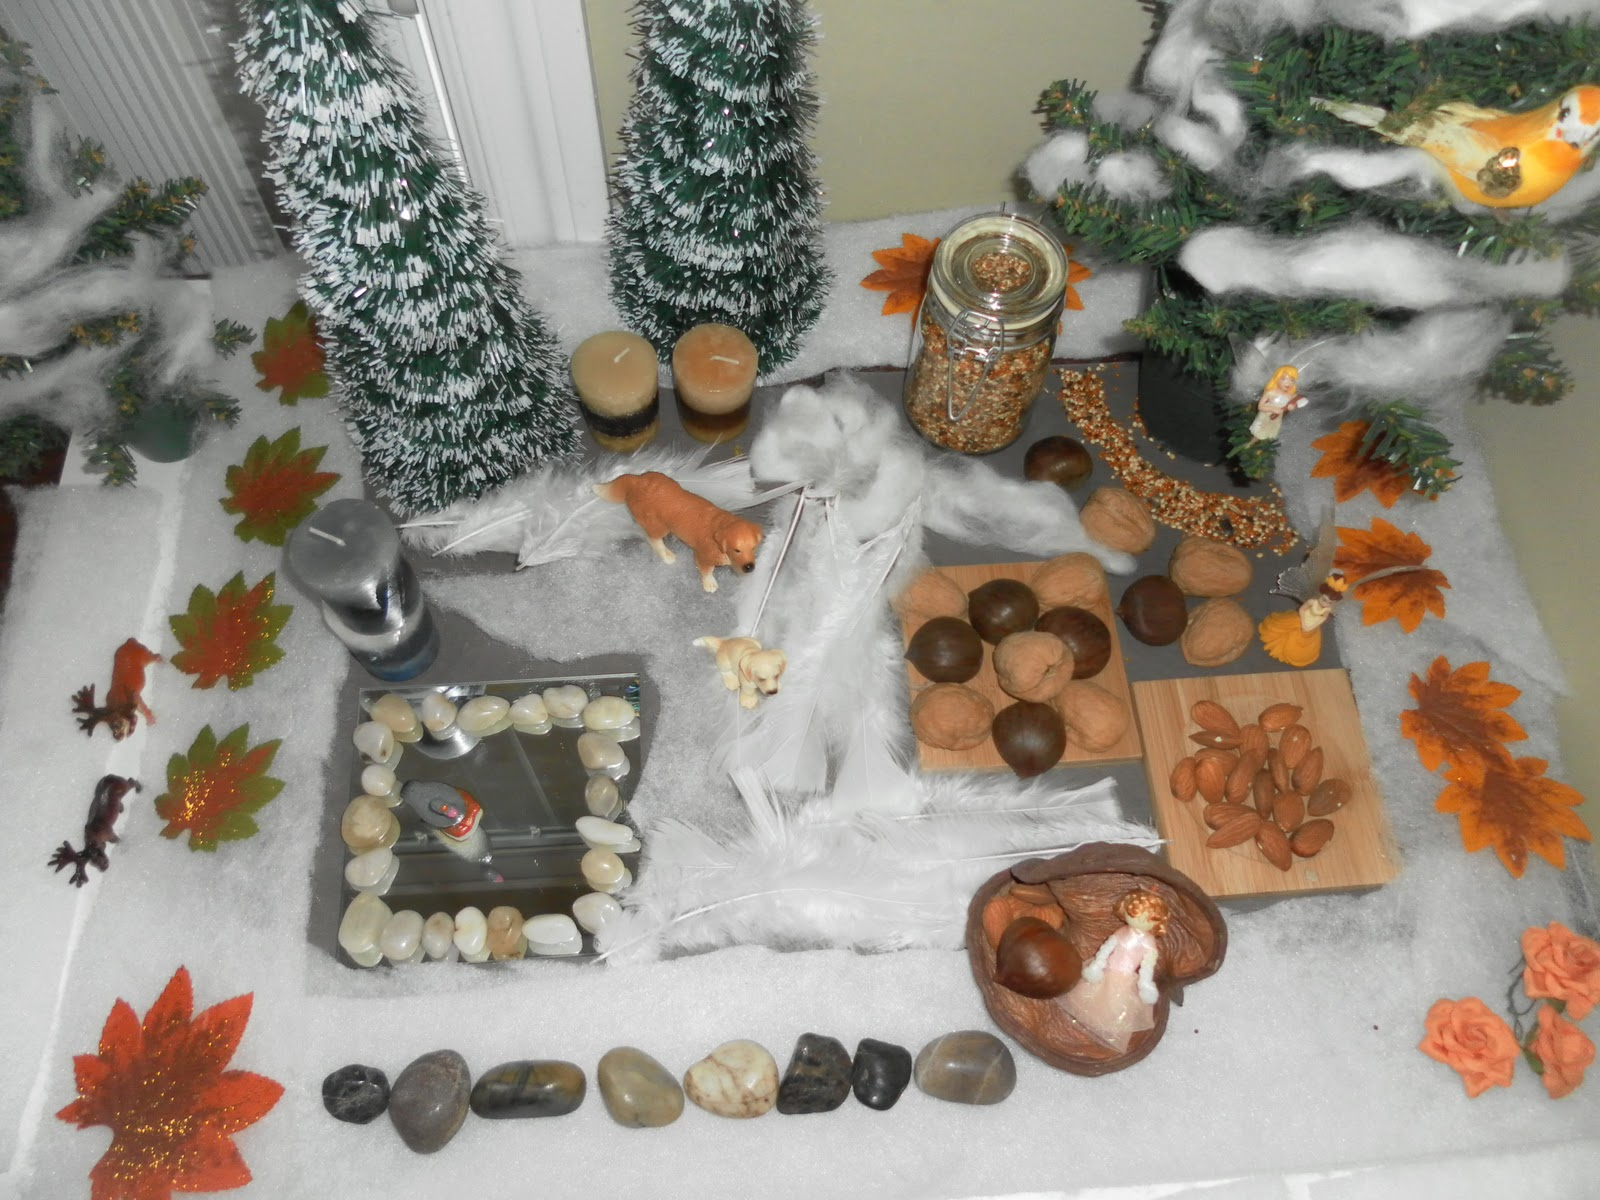 Winter nature table - Butterfly Loved It Played At Her Nature Table Quite Some Time